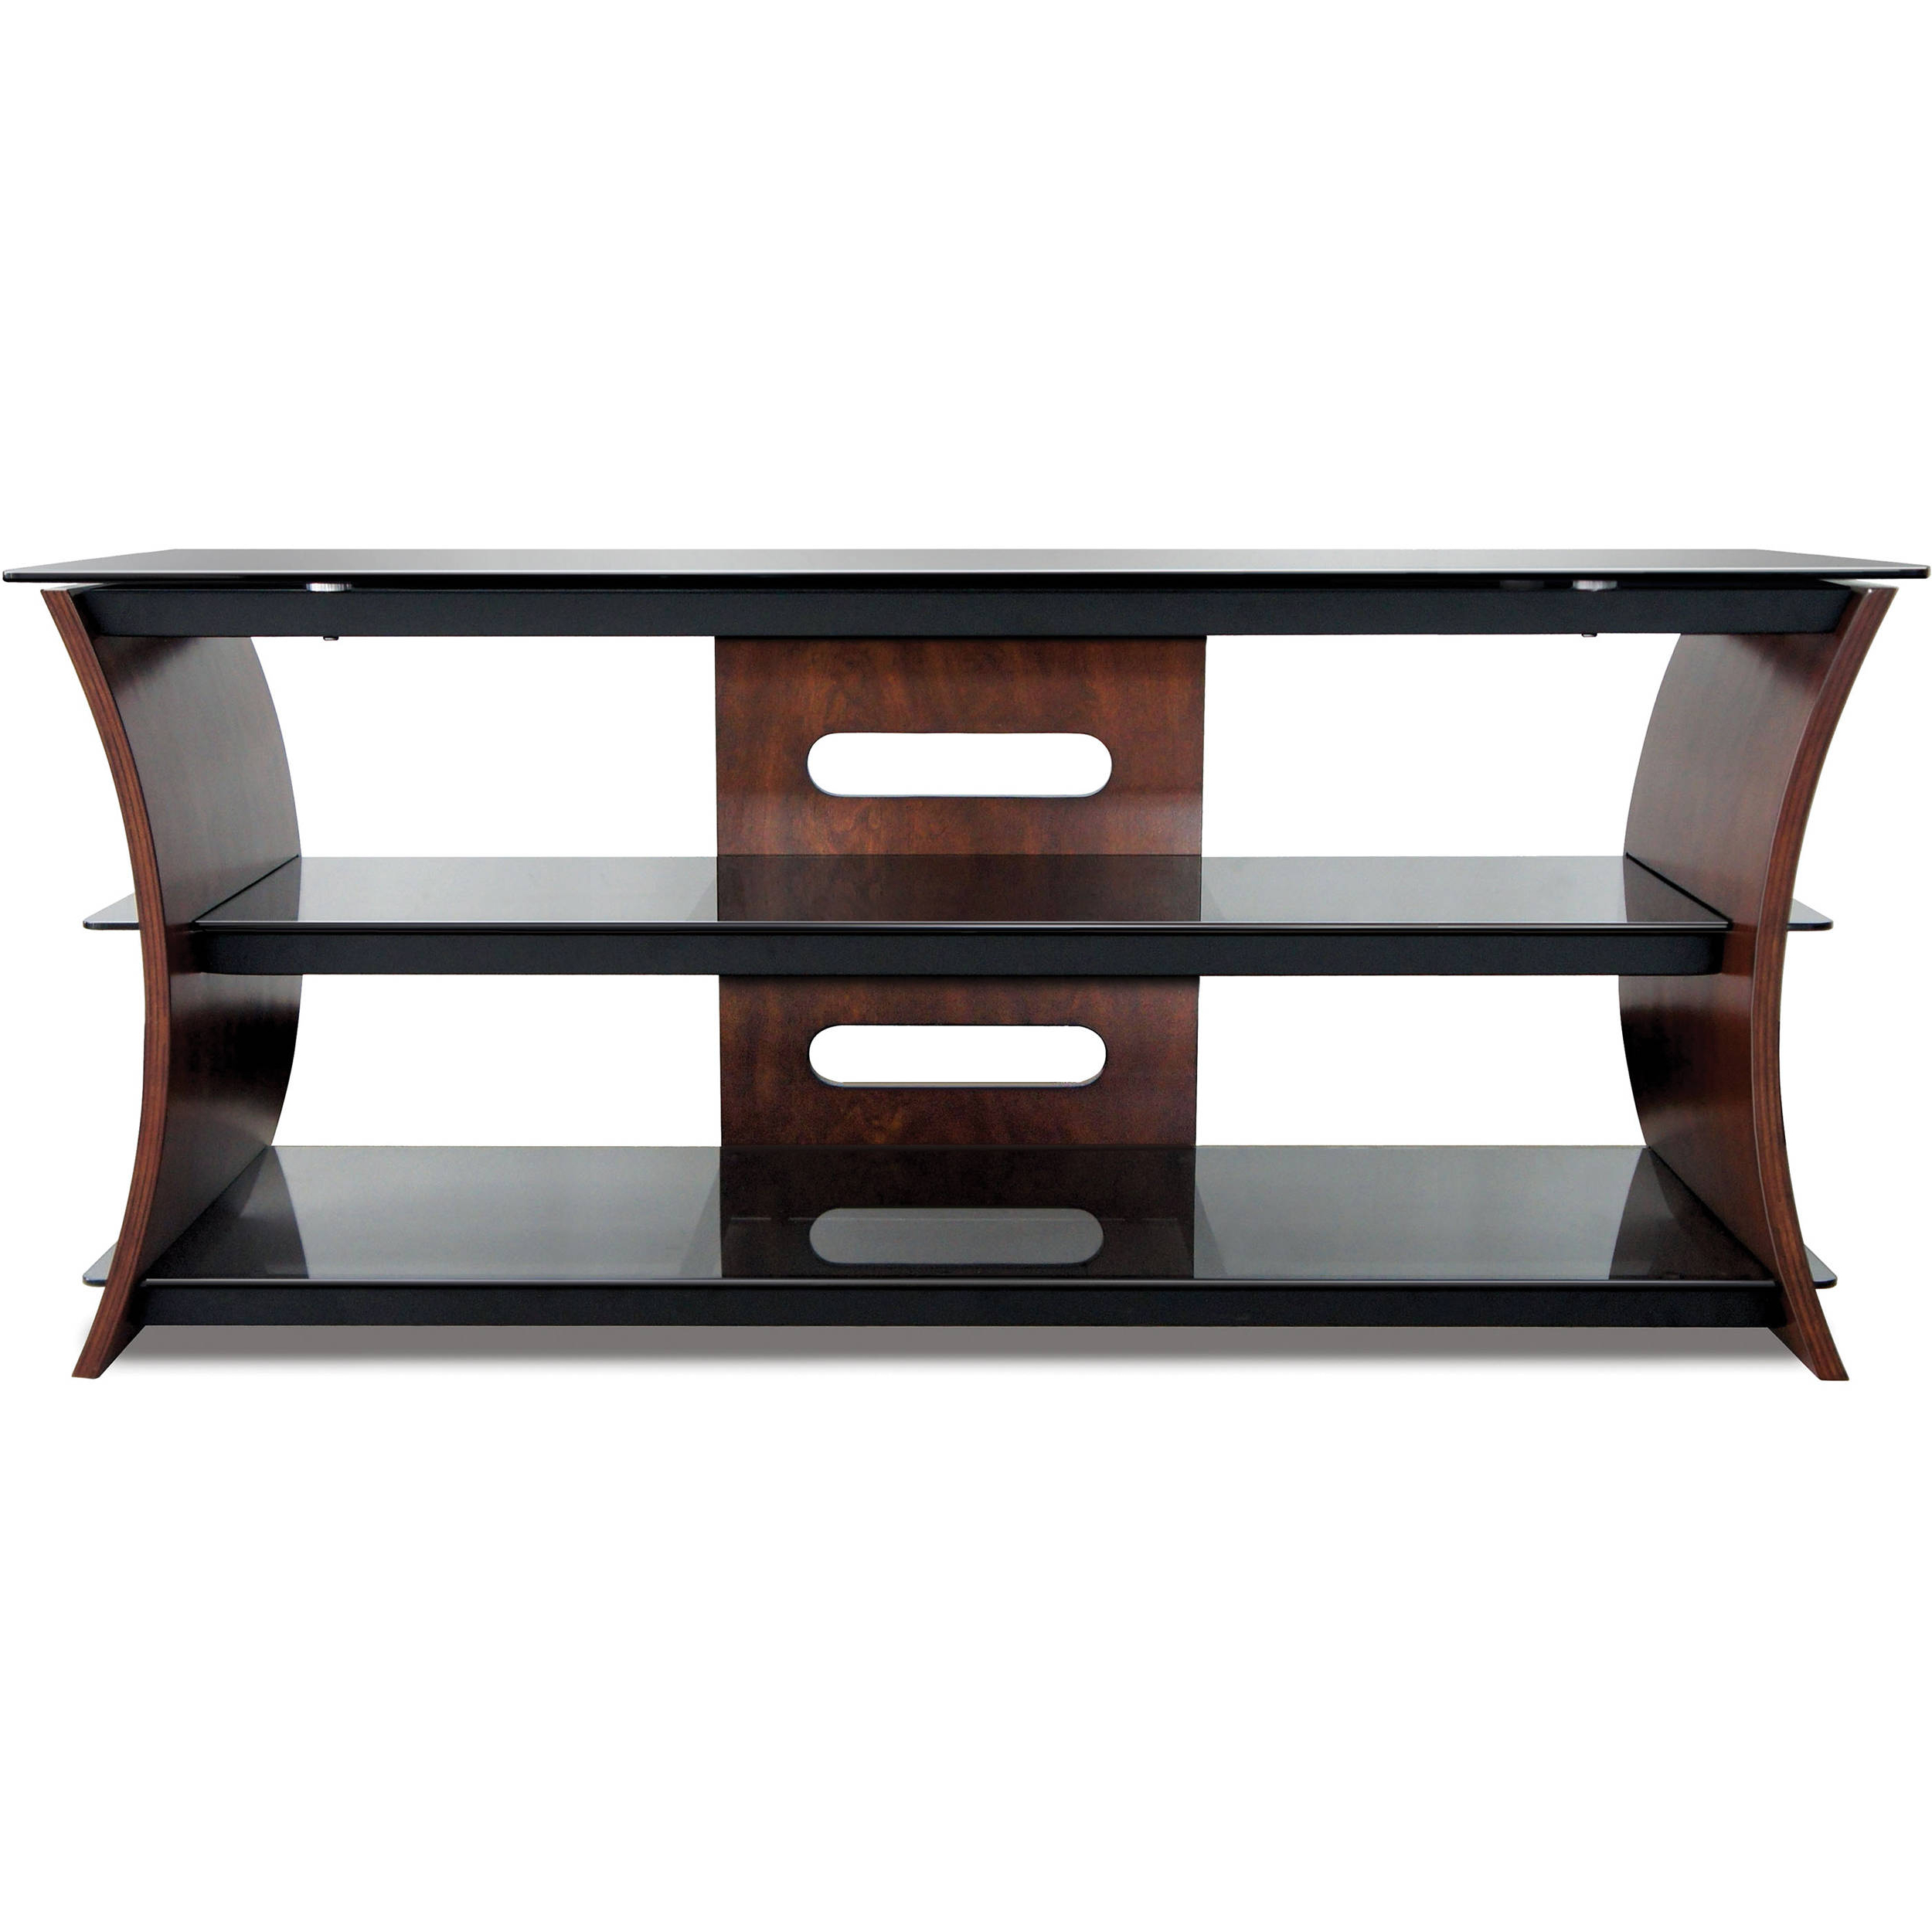 Bell'o Cw356 Curved Wood Tv Stand Cw356 B&h Photo Video Throughout Most Current Wooden Tv Cabinets (Gallery 9 of 20)